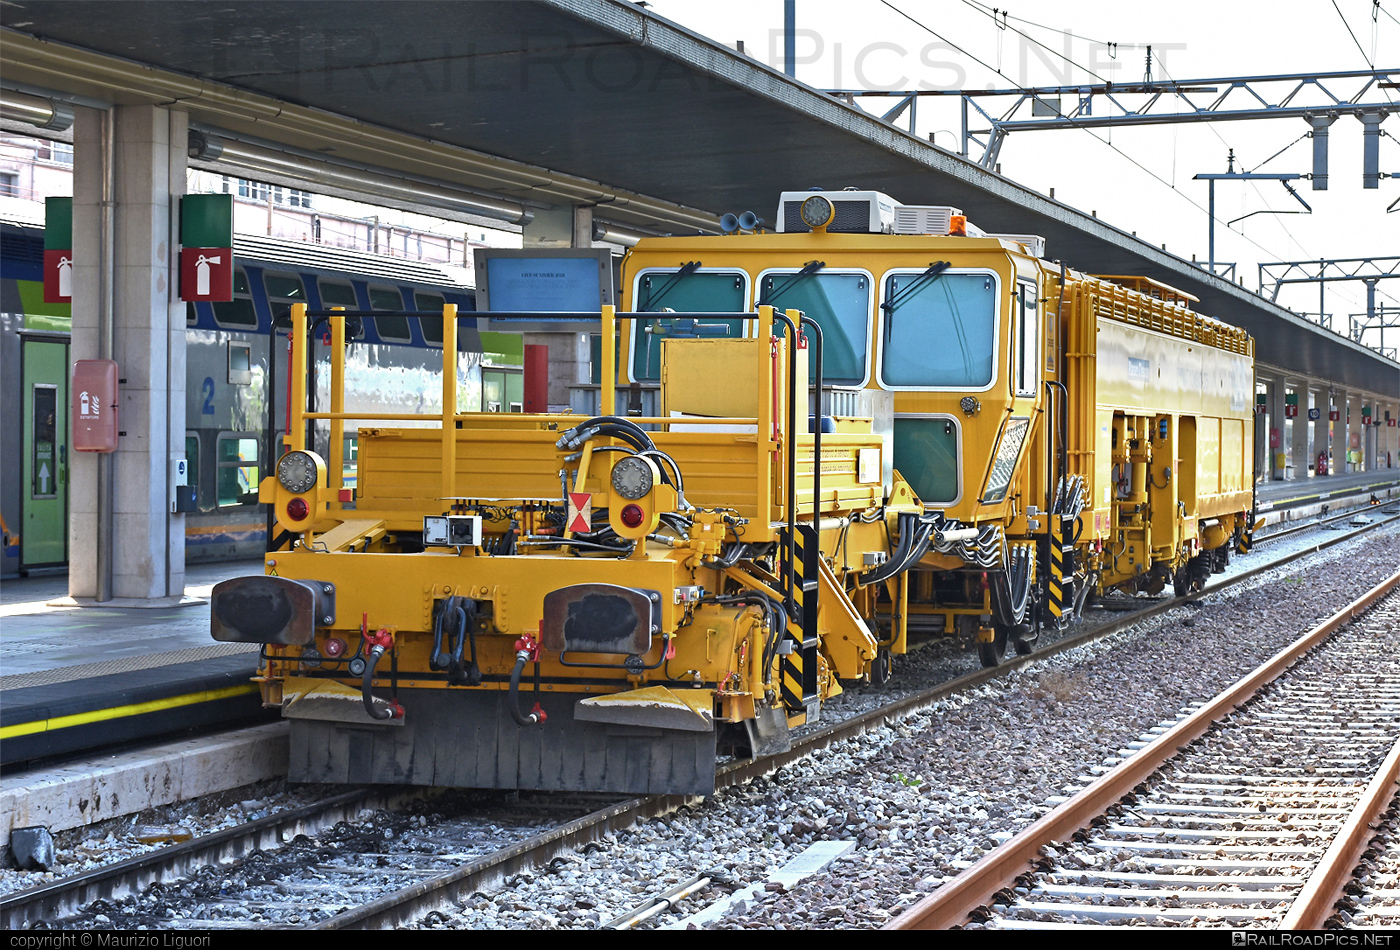 Plasser & Theurer Unimat Combi 08-275 - Unknown vehicle ID operated by Mercitalia Shunting & Terminal S.r.l. #MercitaliaShuntingAndTerminal #MercitaliaShuntingAndTerminalSrl #PlasserAndTheurerUnimatCombi08275 #PlasserTheurerUnimatCombi08275 #UnimatCombi08275 #ferroviedellostato #fs #fsitaliane #mercitalia #plasserandtheurer #plassertheurer